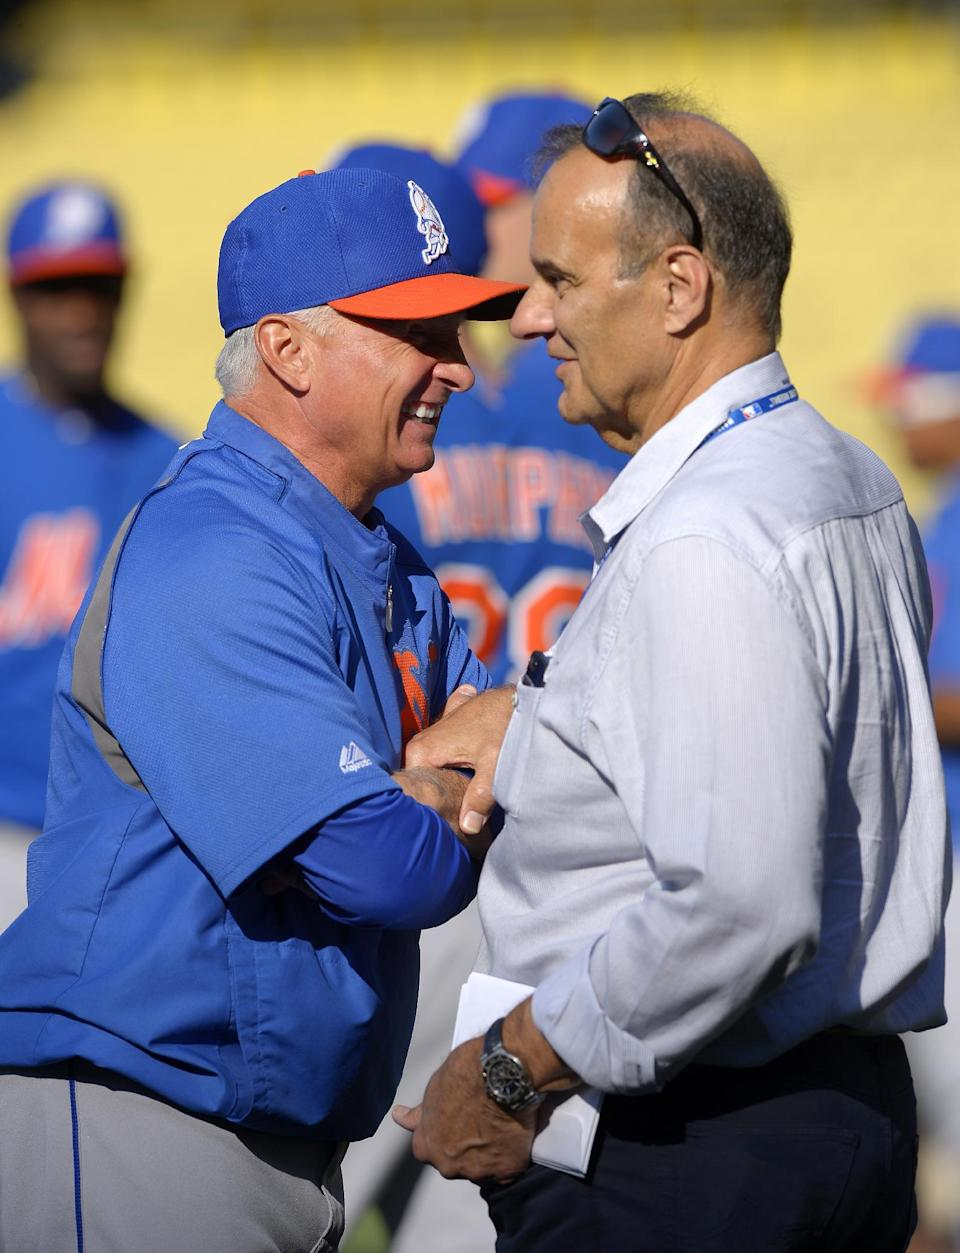 New York Mets manager Terry Collins, left, talks with MLB executive vice president of baseball operations Joe Torre during batting practice before their baseball game against the Los Angeles Dodgers, Monday, Aug. 12, 2013, in Los Angeles. (AP Photo/Mark J. Terrill)